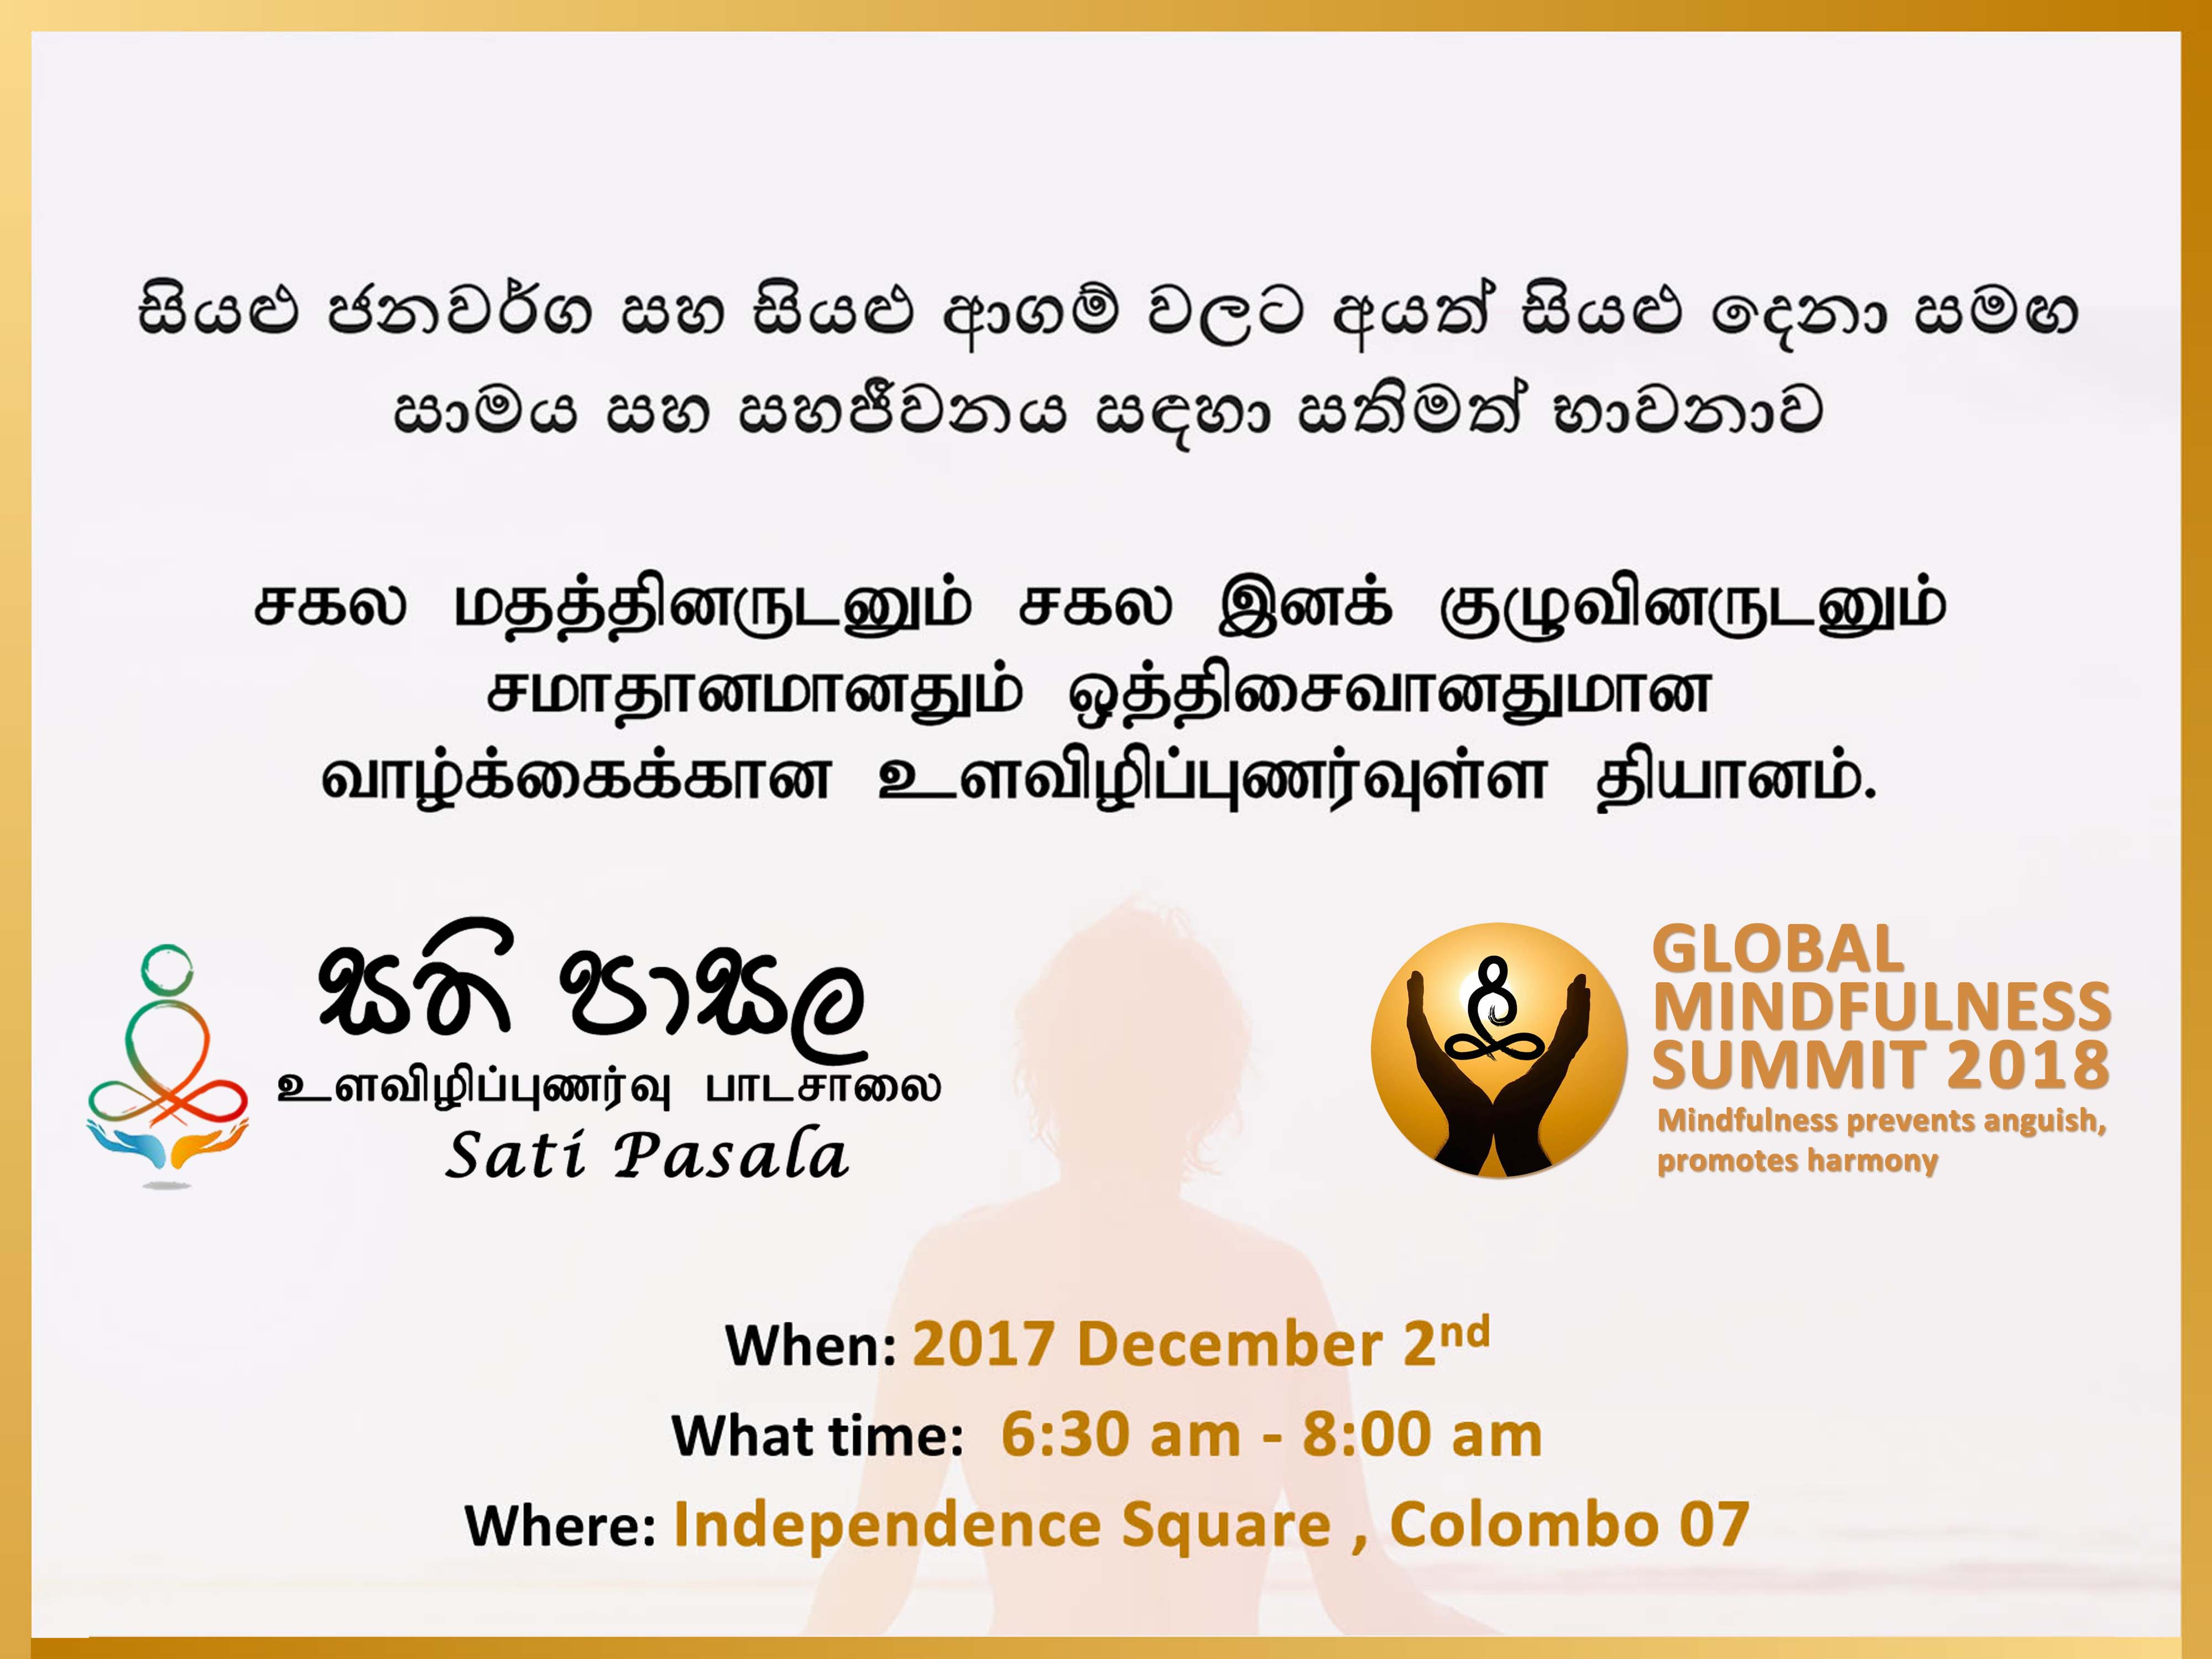 Mindfulness Group Meditation with all religions, faiths (Saturday December 2nd @ 6.30am, Independence Square)